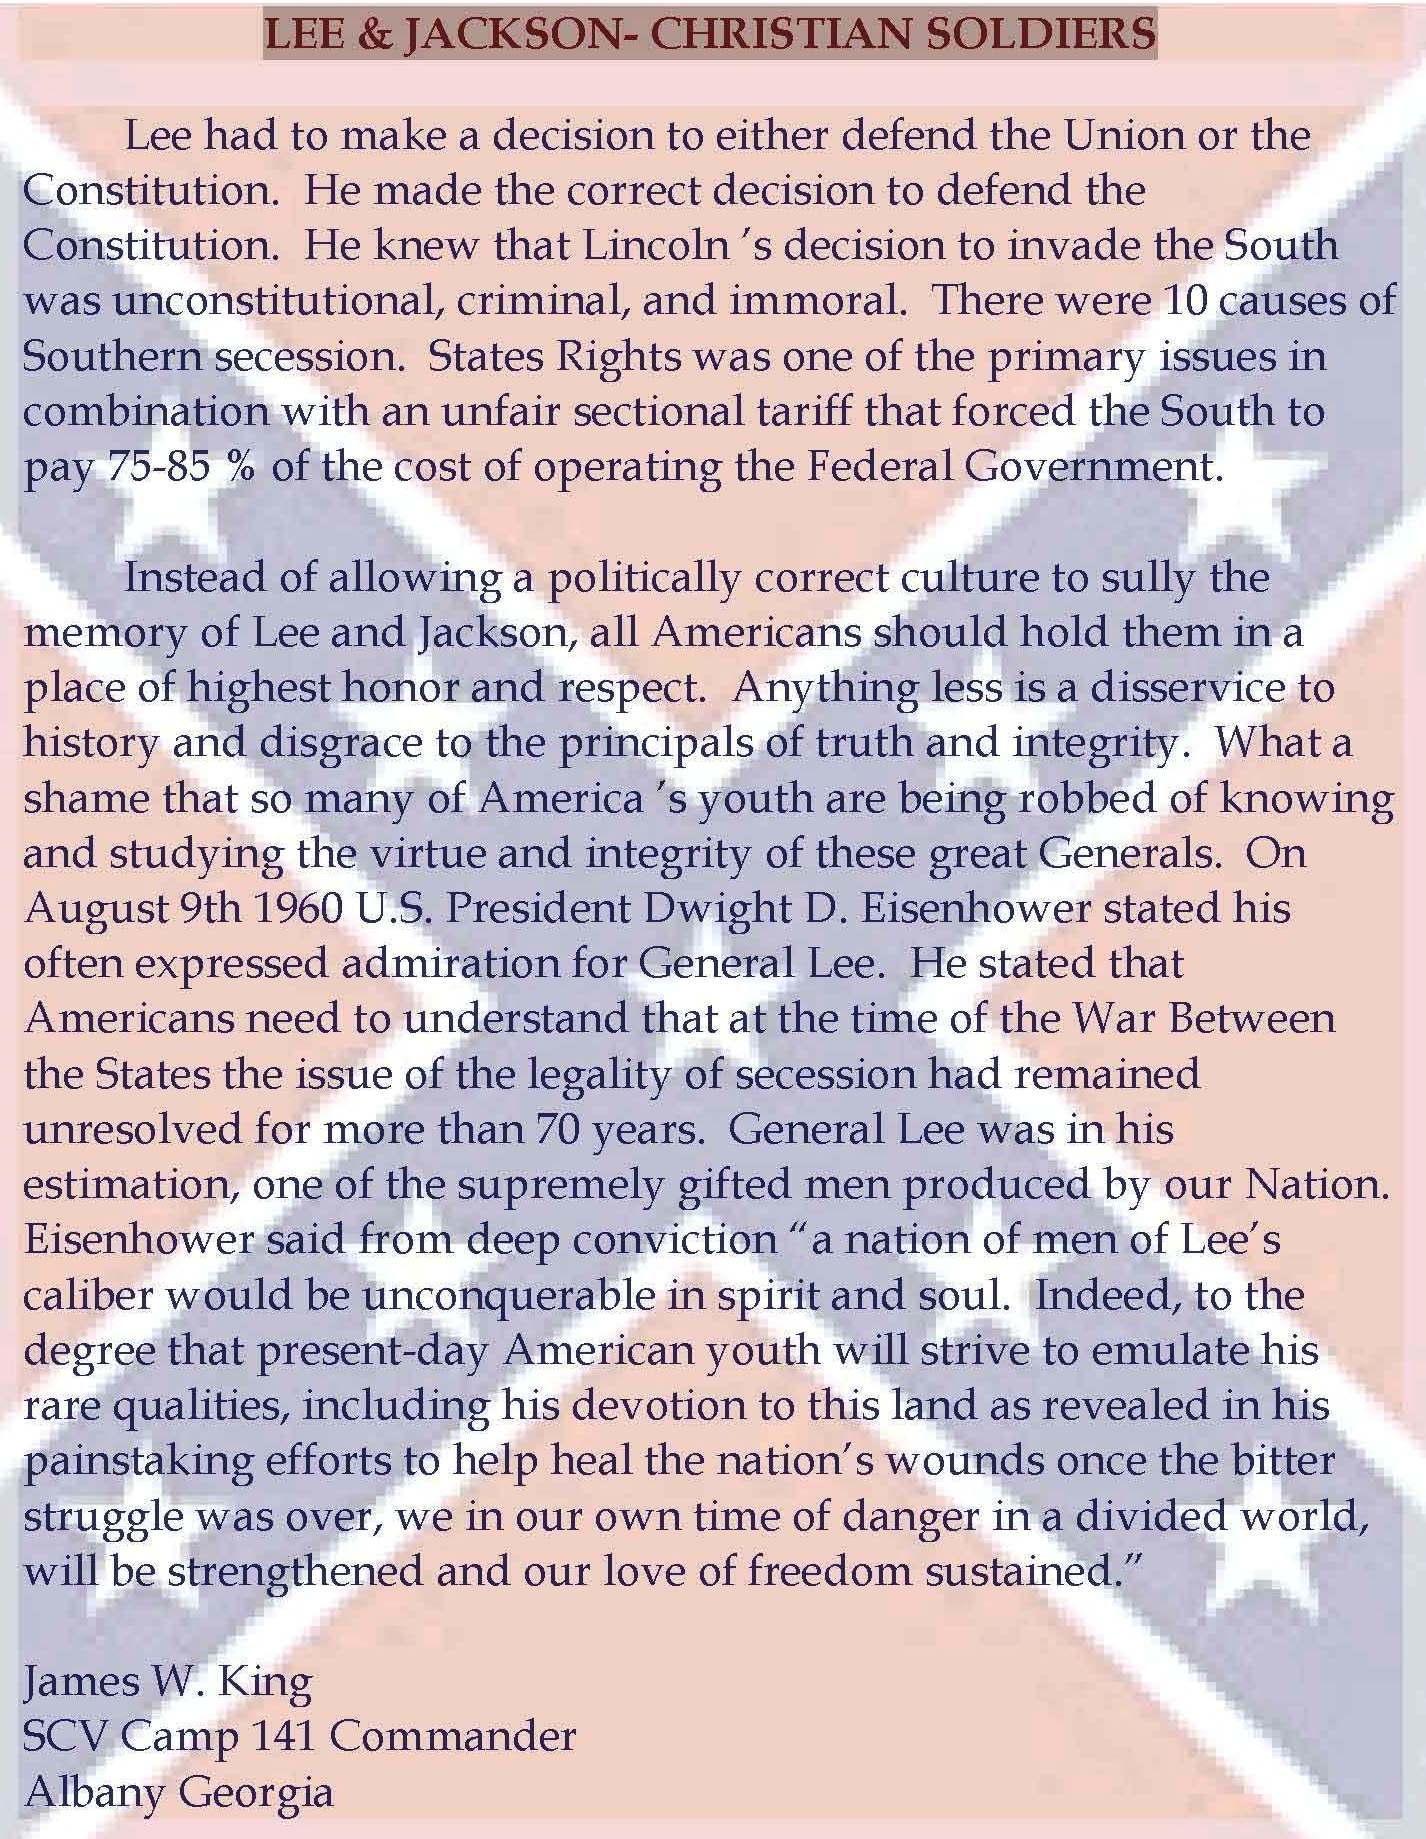 LEE-JACKSON-CHRISTIAN-SOLDIERS_Page_2